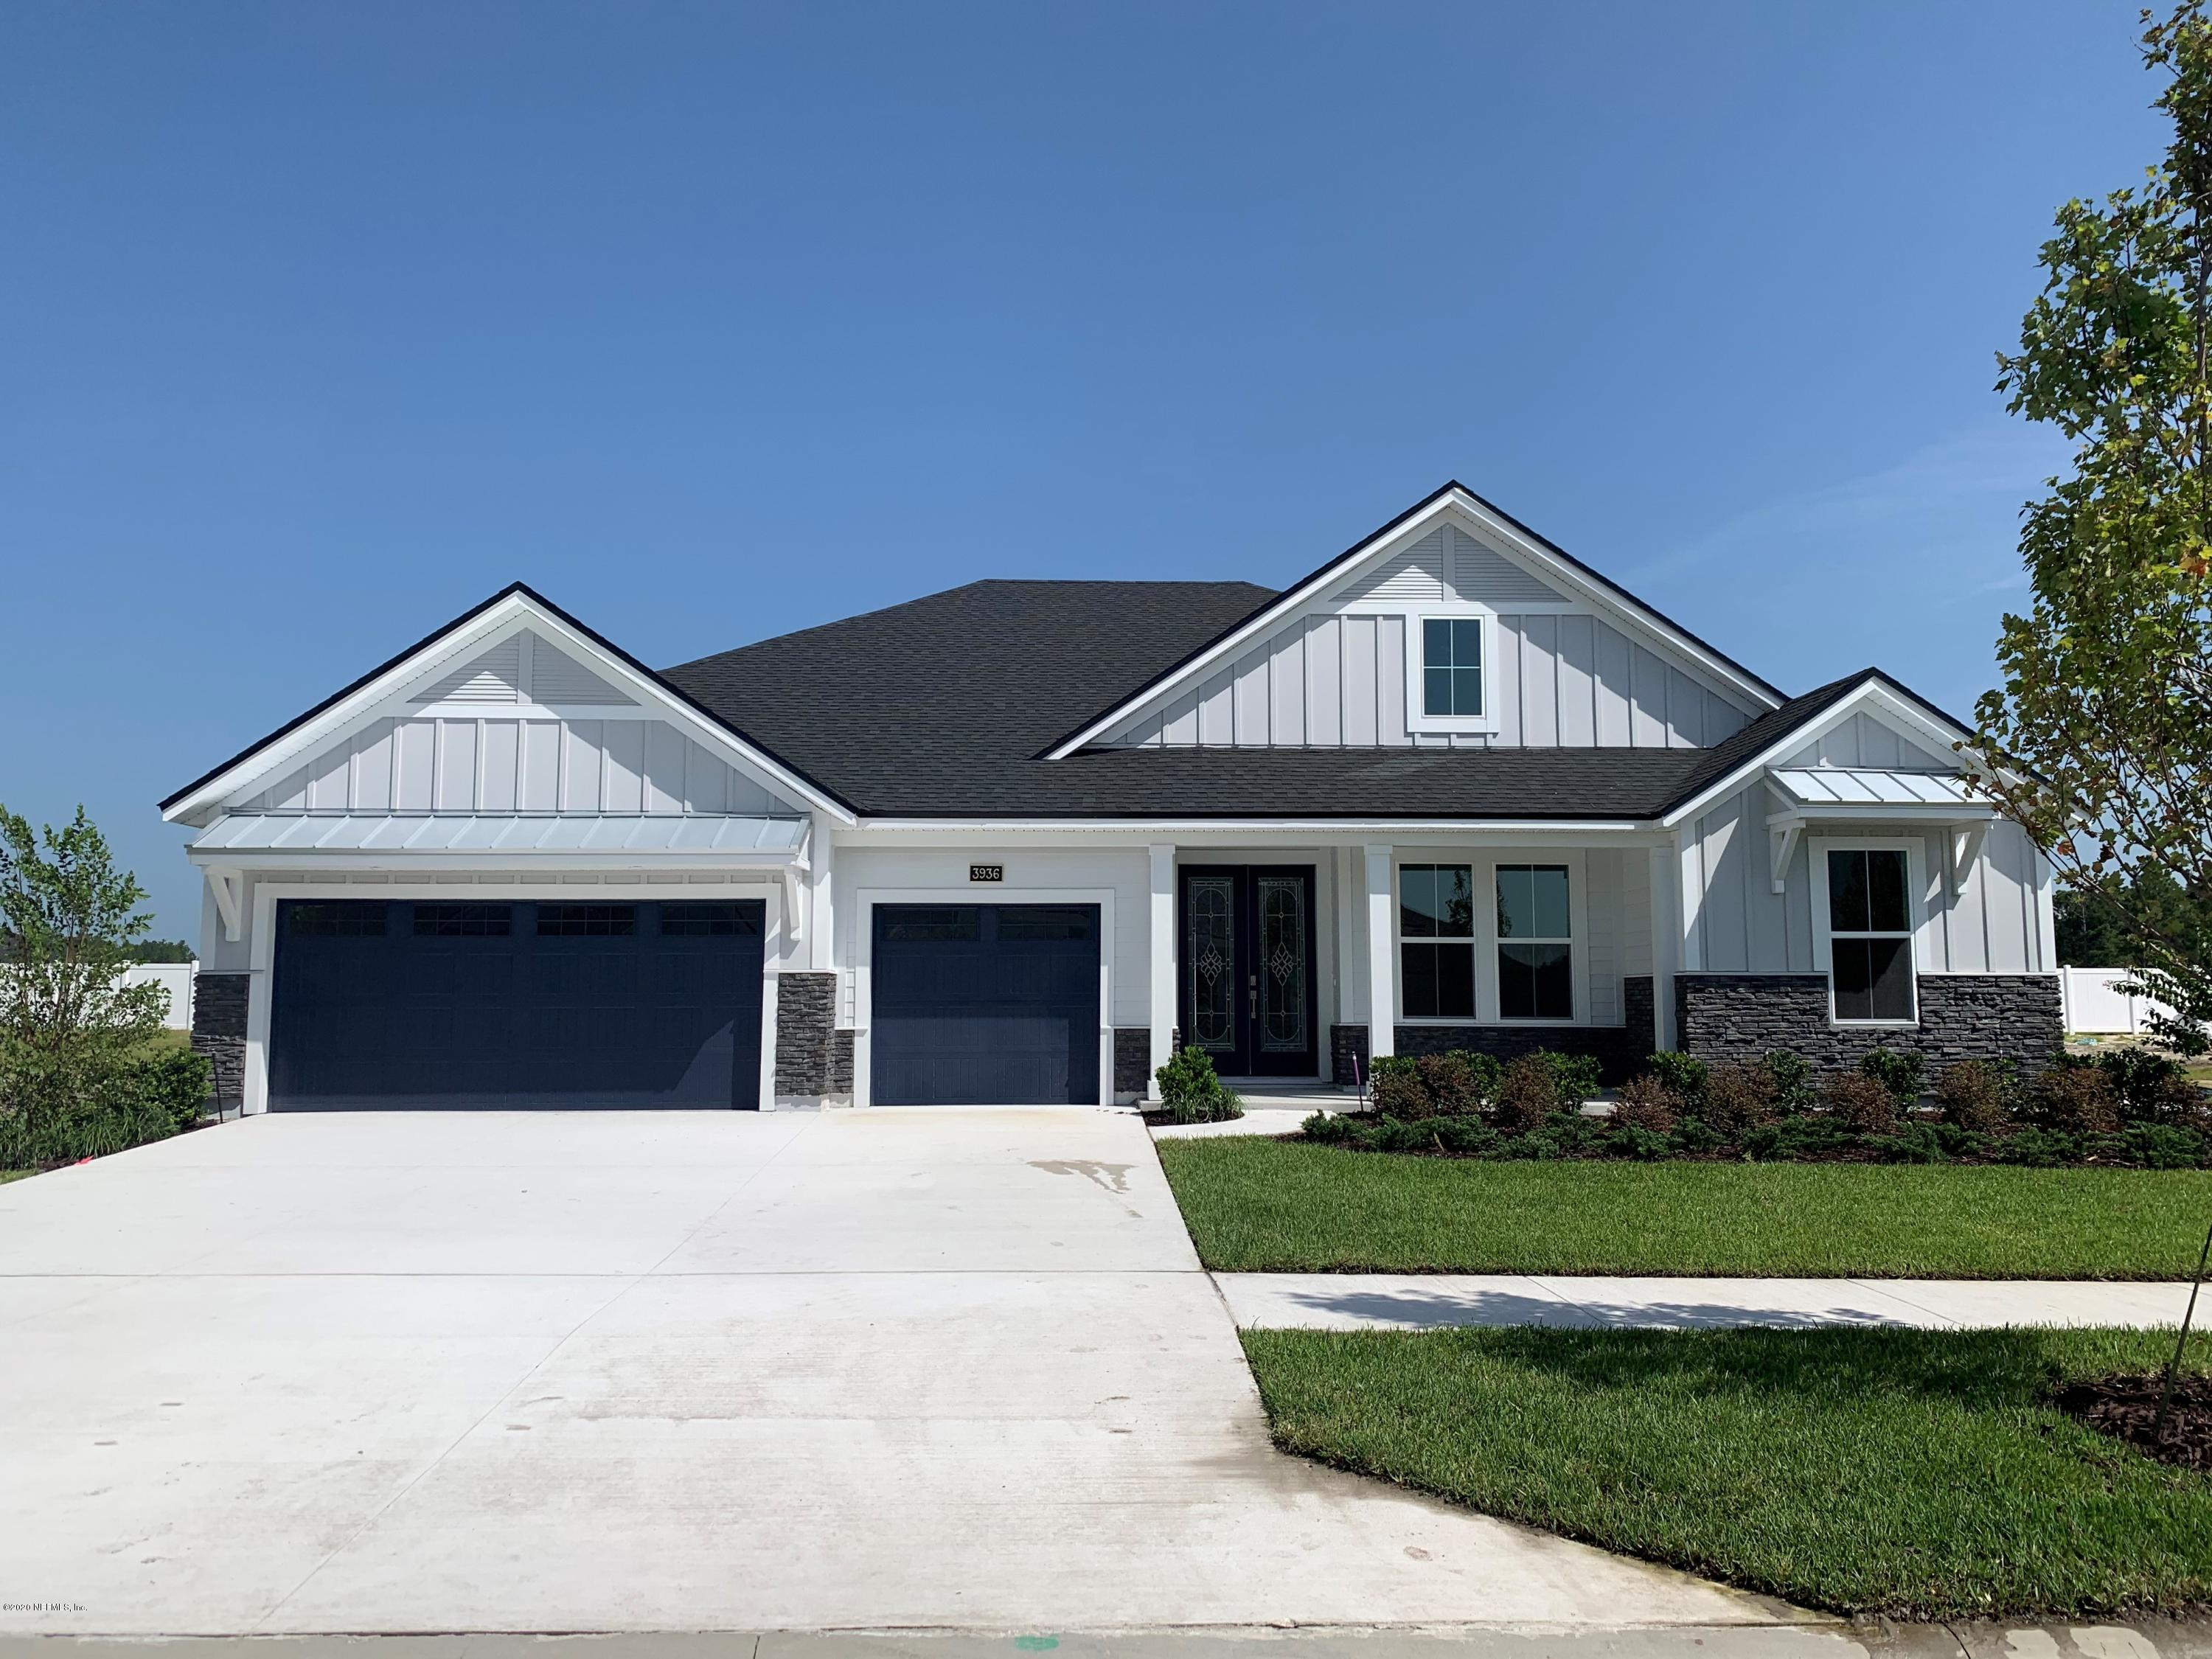 3936 SPYGLASS HILL, MIDDLEBURG, FLORIDA 32068, 5 Bedrooms Bedrooms, ,3 BathroomsBathrooms,Residential,For sale,SPYGLASS HILL,1050788